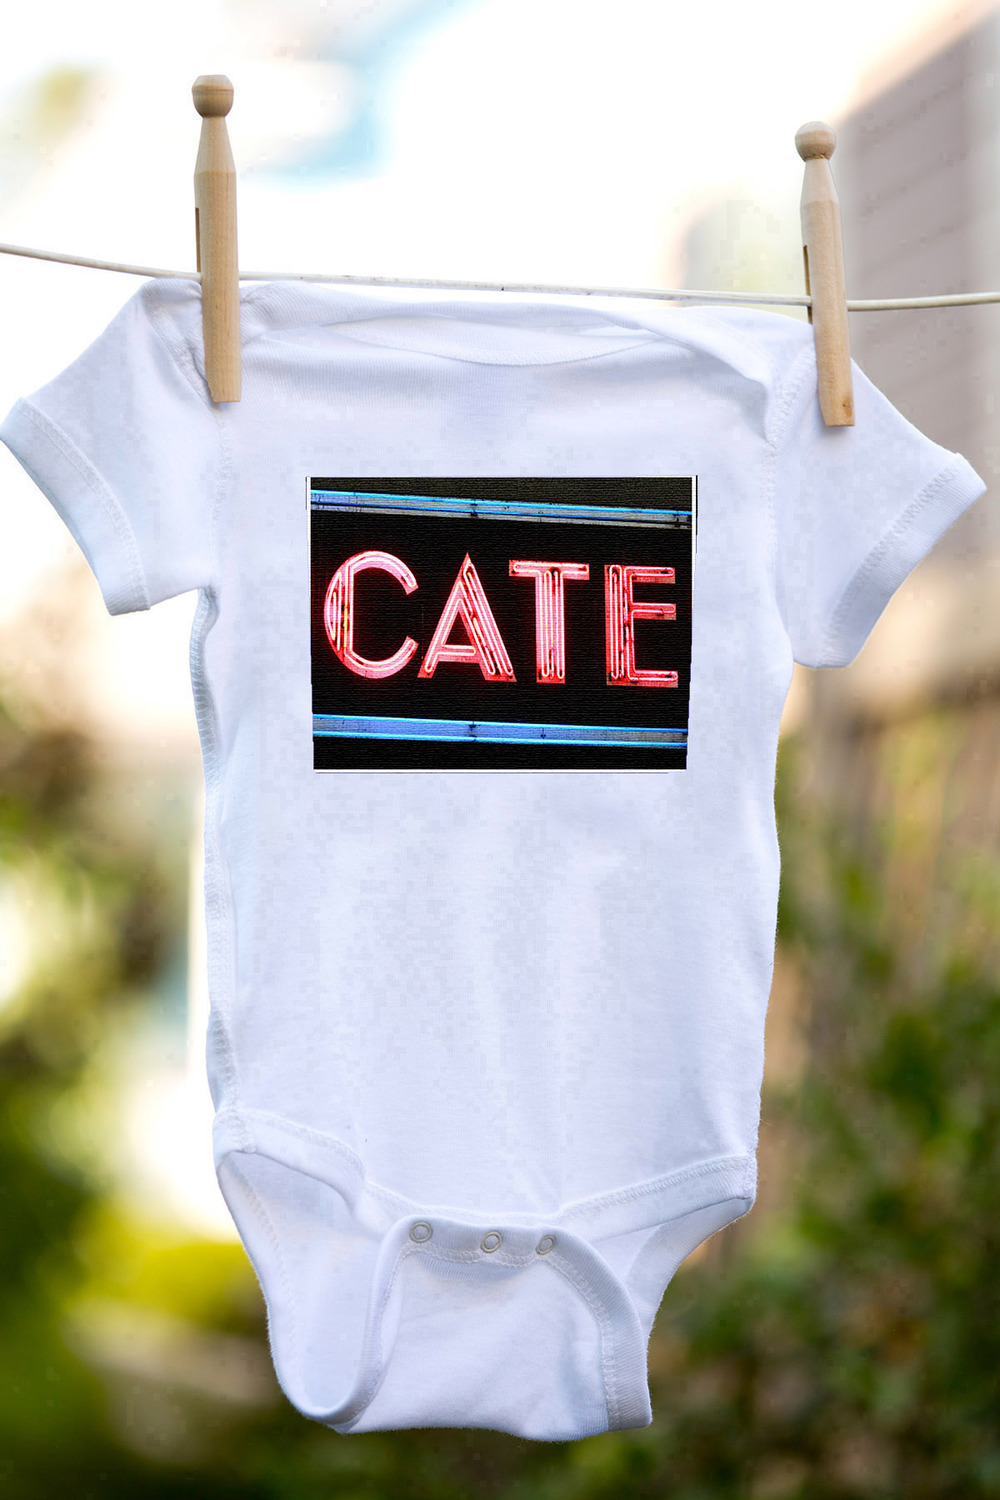 https://www.etsy.com/listing/234292056/personalized-baby-bodysuit-featuring-the?ref=shop_home_active_1&ga_search_query=cate